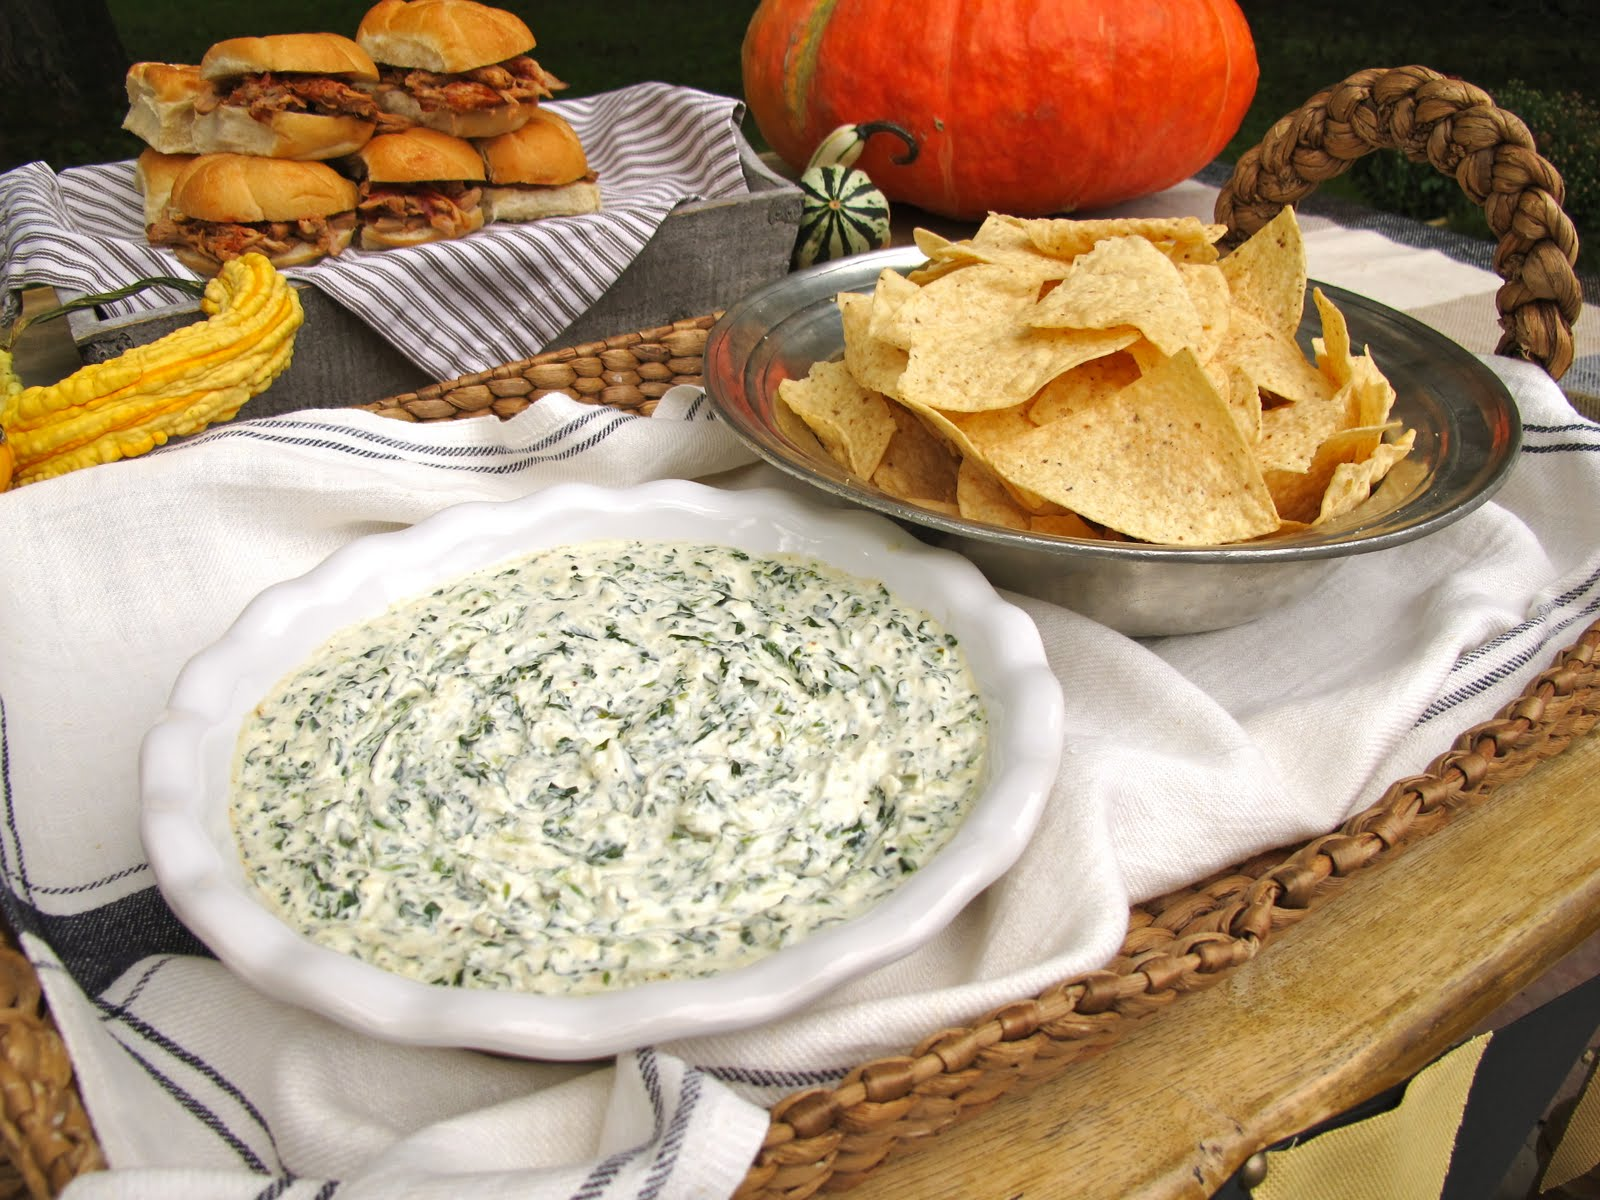 ... chips and dips my favorite dip of all time is classic creamy spinach